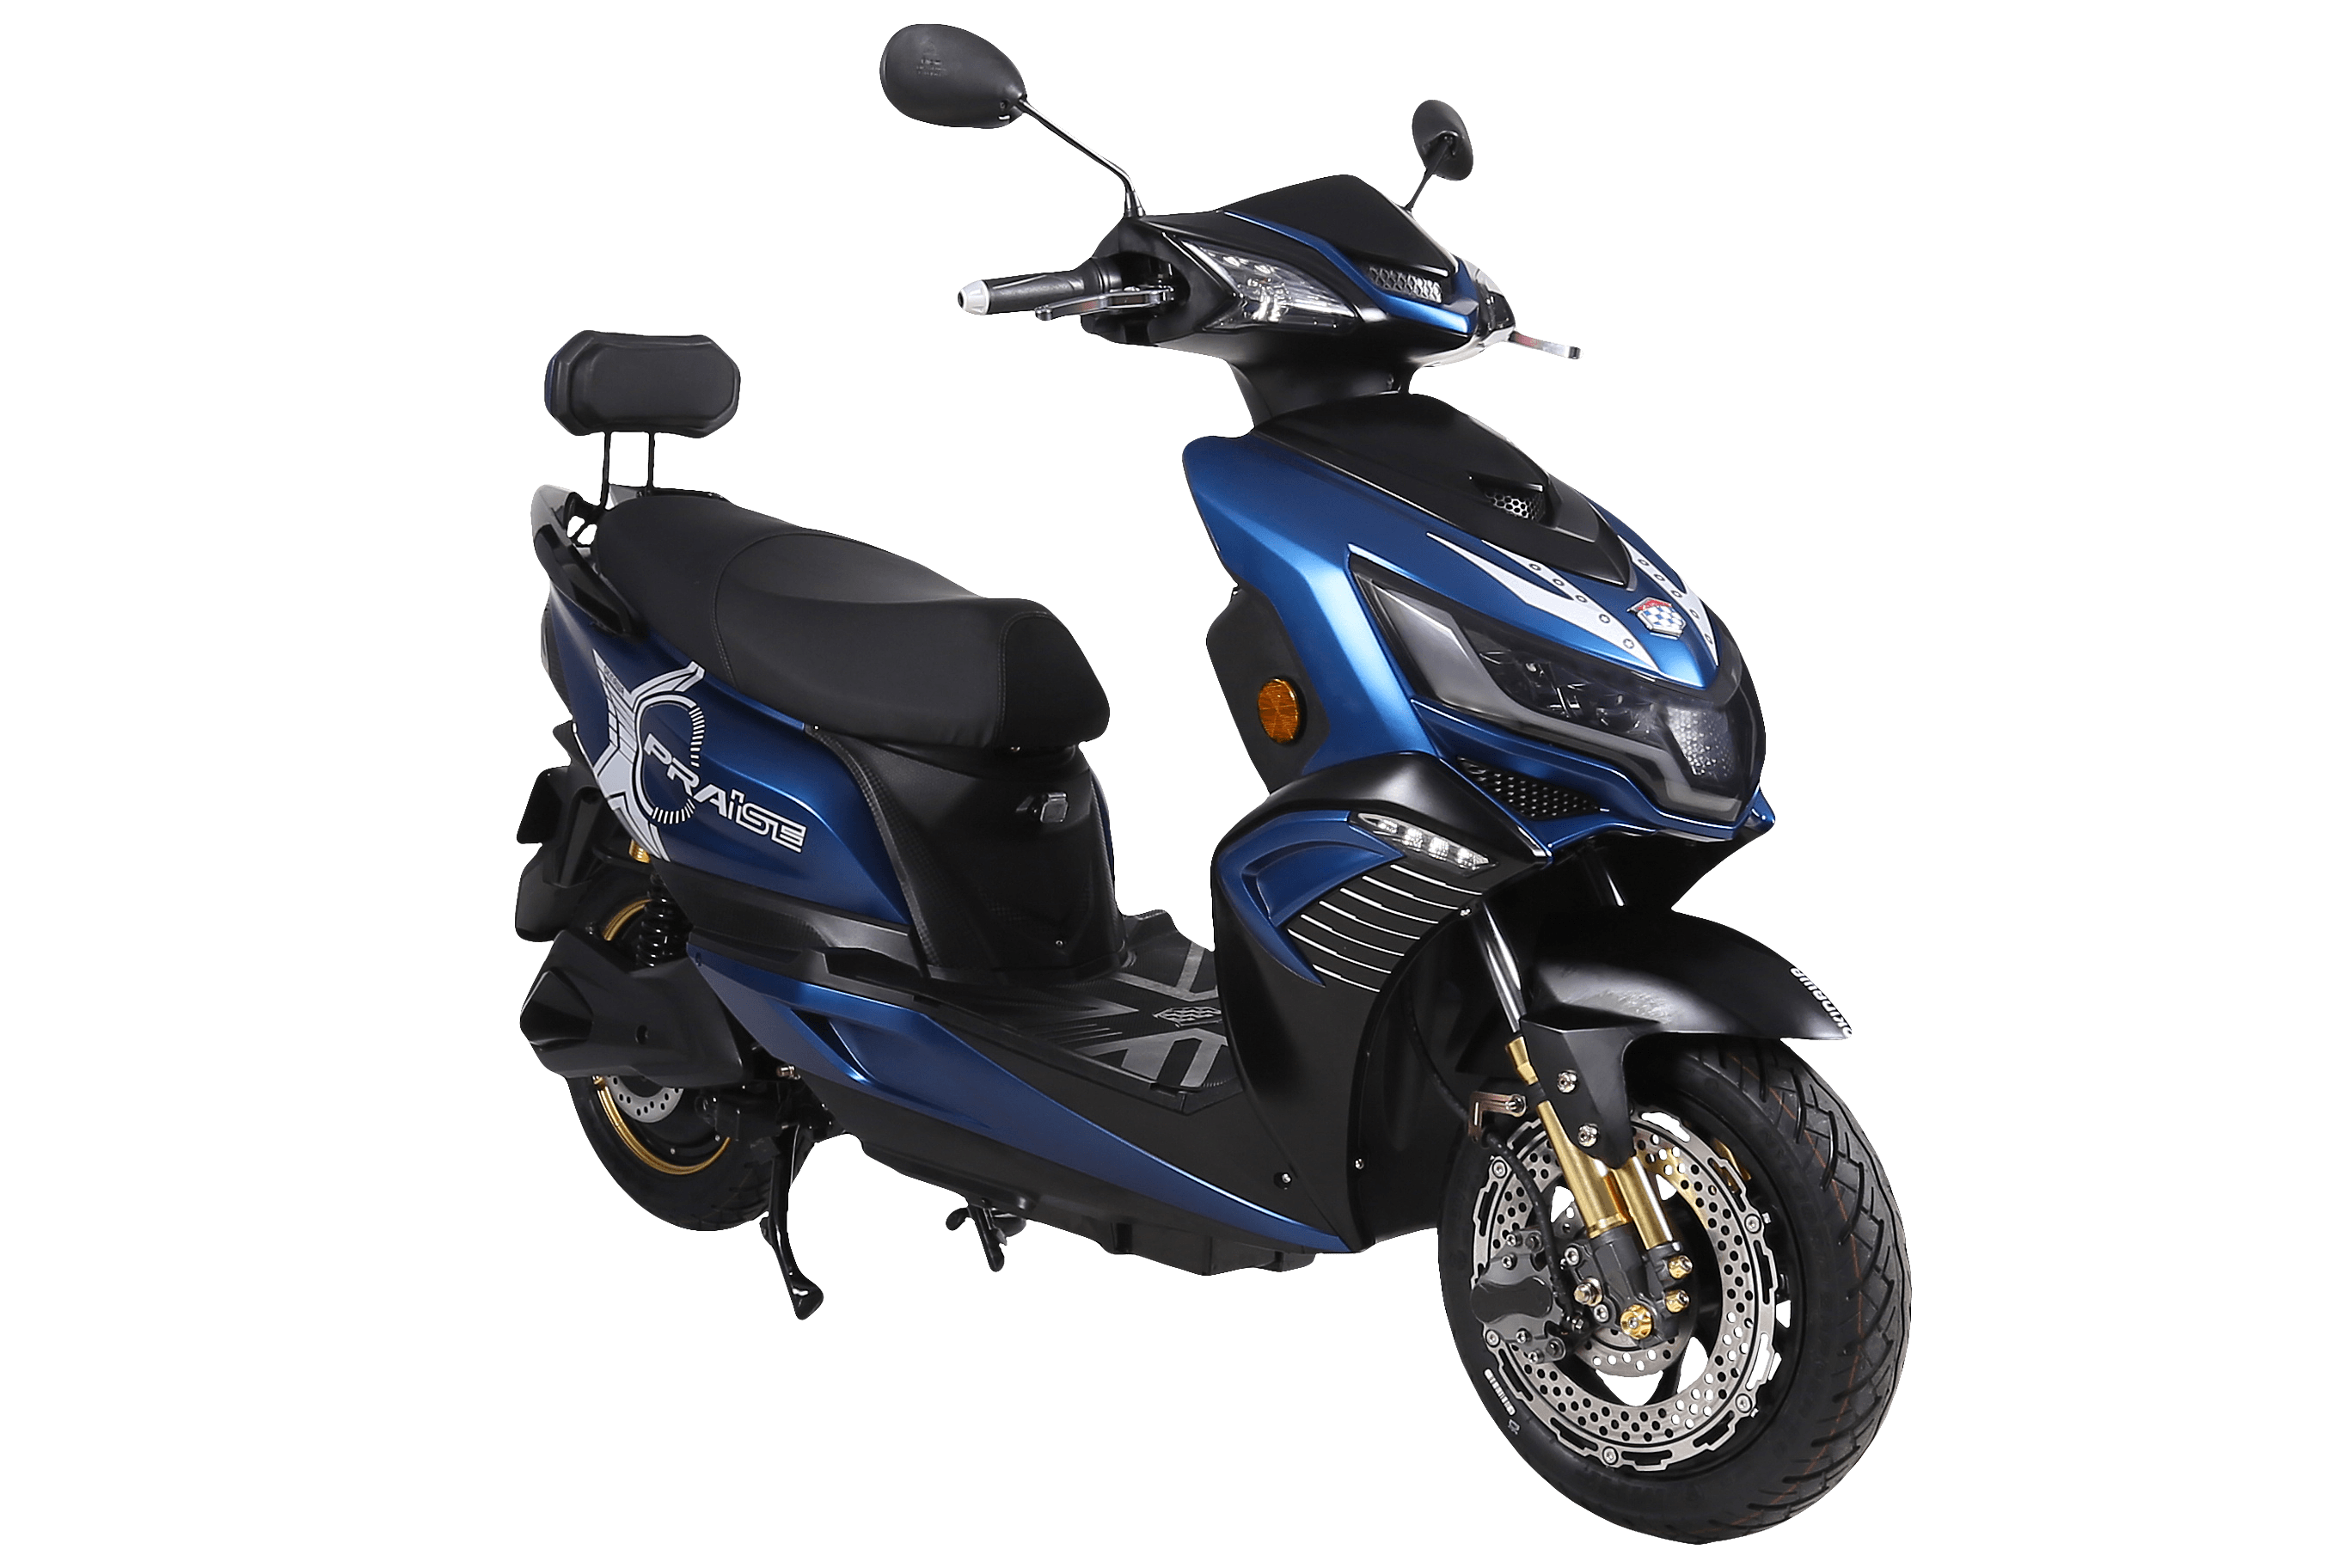 Lithium Ion Car Battery >> Okinawa Praise Electric Scooter Price in India, Specifications, Range, Pics